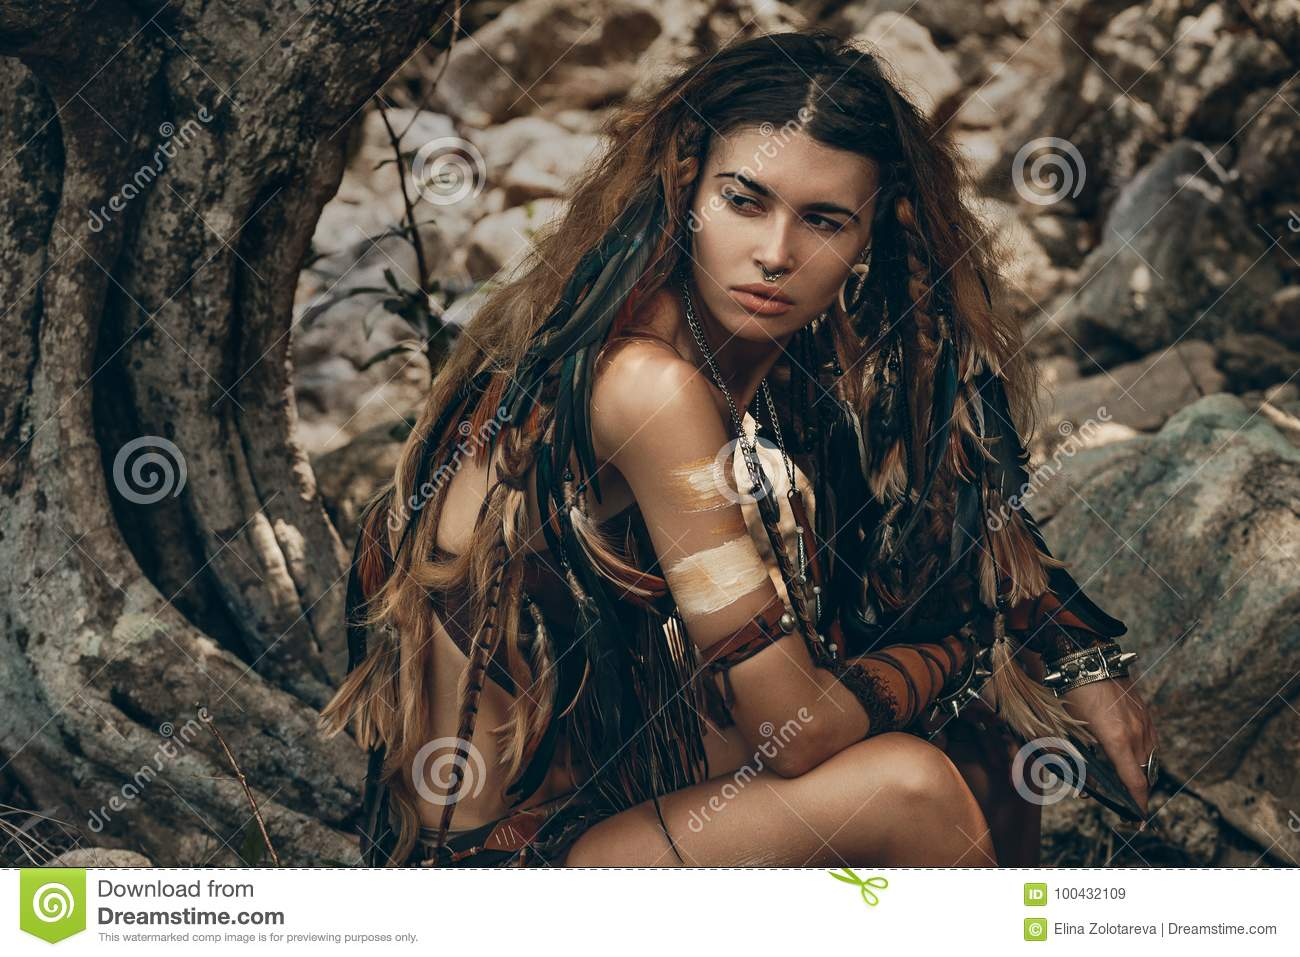 Women of the Amazon tribes. Wild tribes of the Amazon